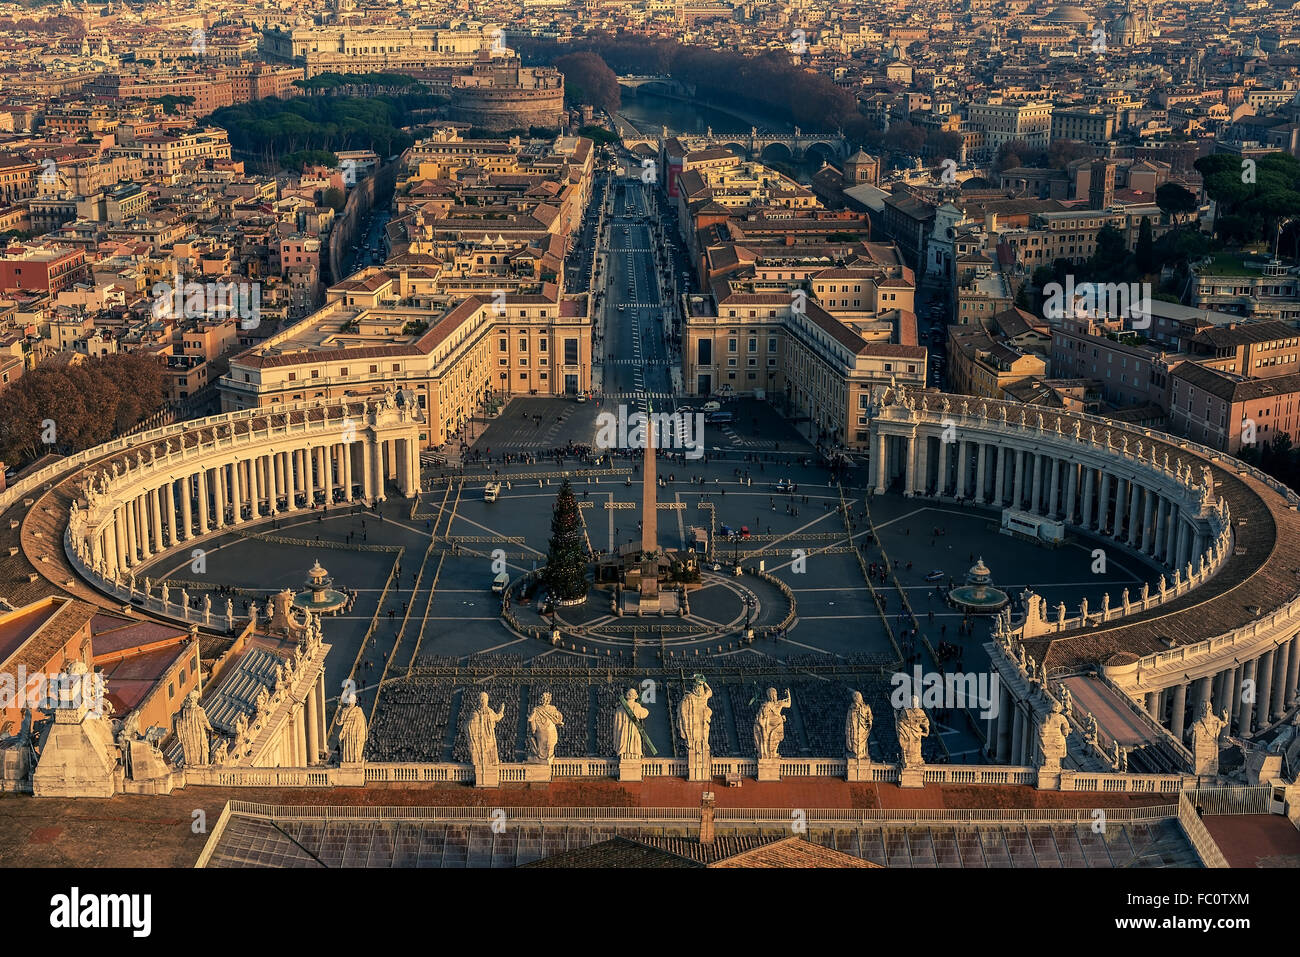 Aerial view of Vatican City and Rome, Italy - Stock Image